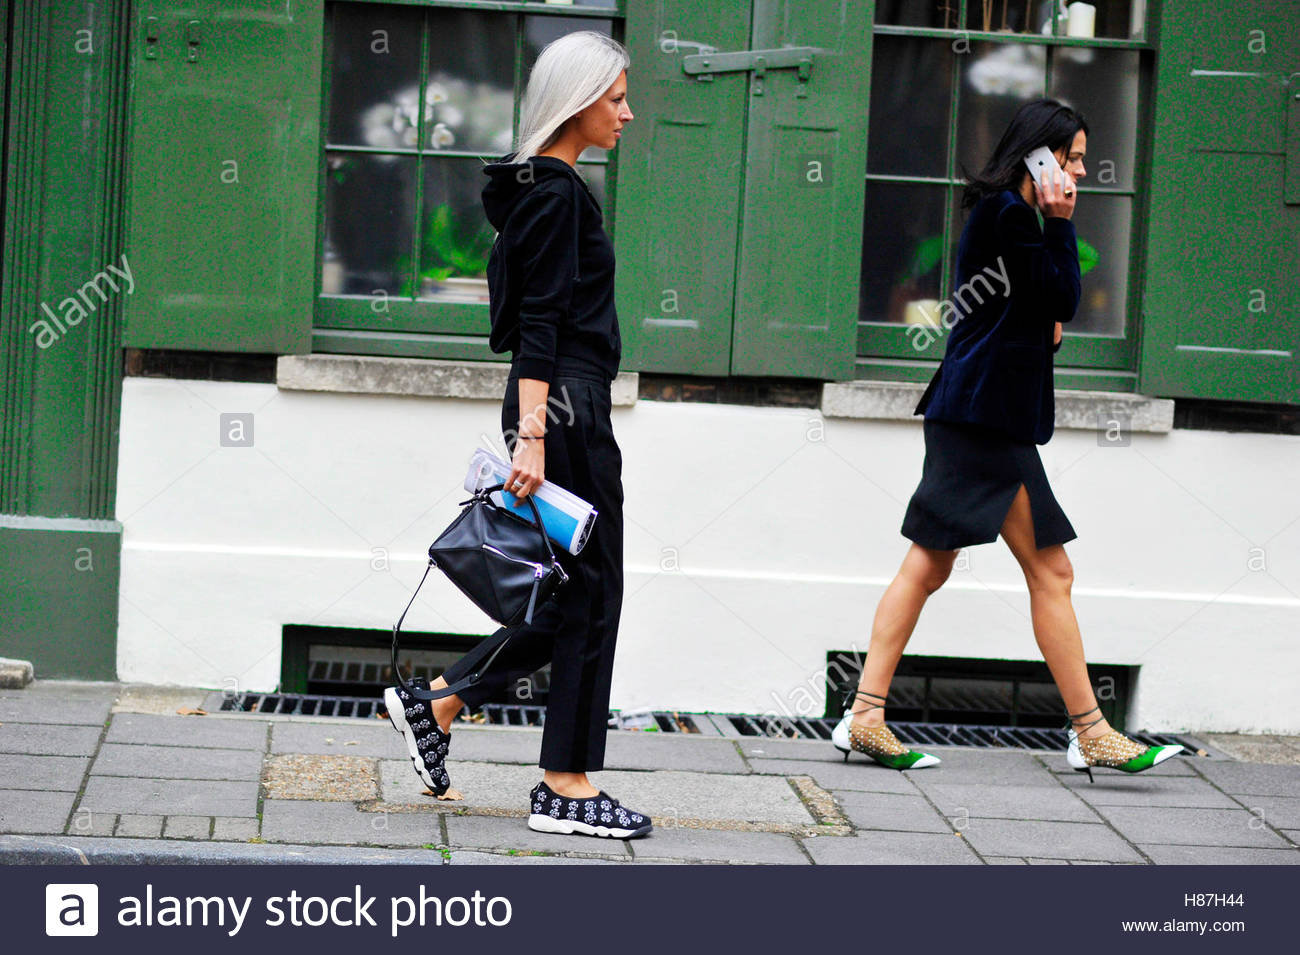 Sarah Harris, Old Spitalfields Market London Fashion Week SS17 FW16 Street Style September 16 2016. - Stock Image